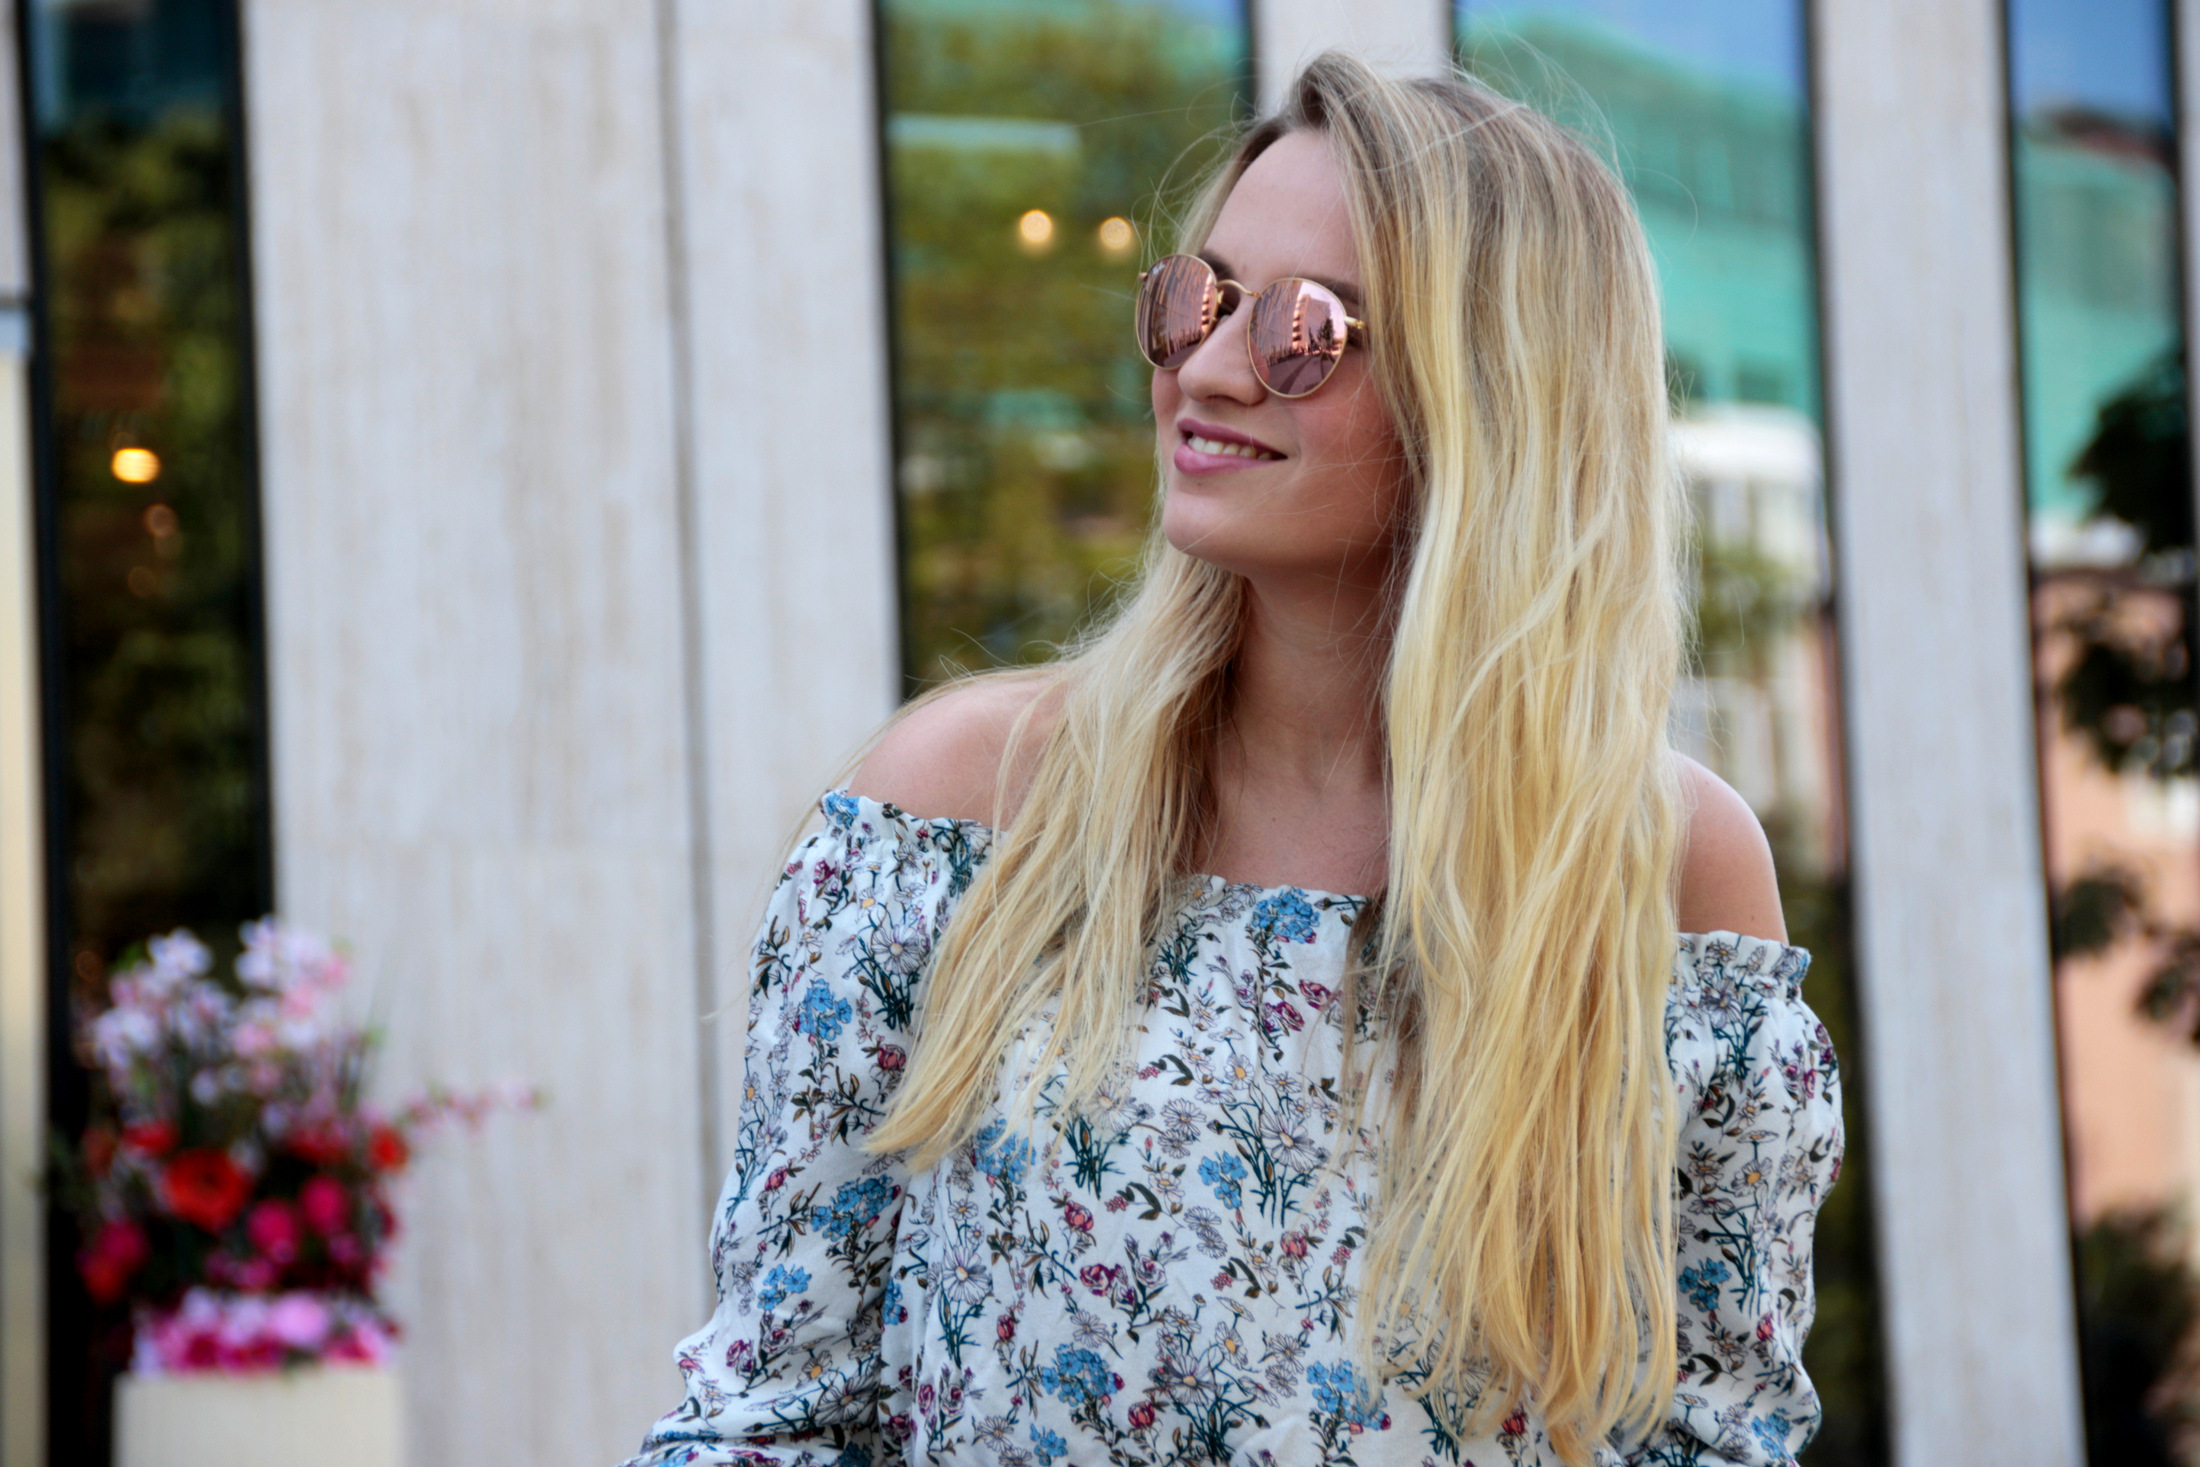 maxirock-maxiskirt-maxi-off-shoulder-shirt-flowers-olive-green-sunnies-shades-round-metal-ray-ban (6)